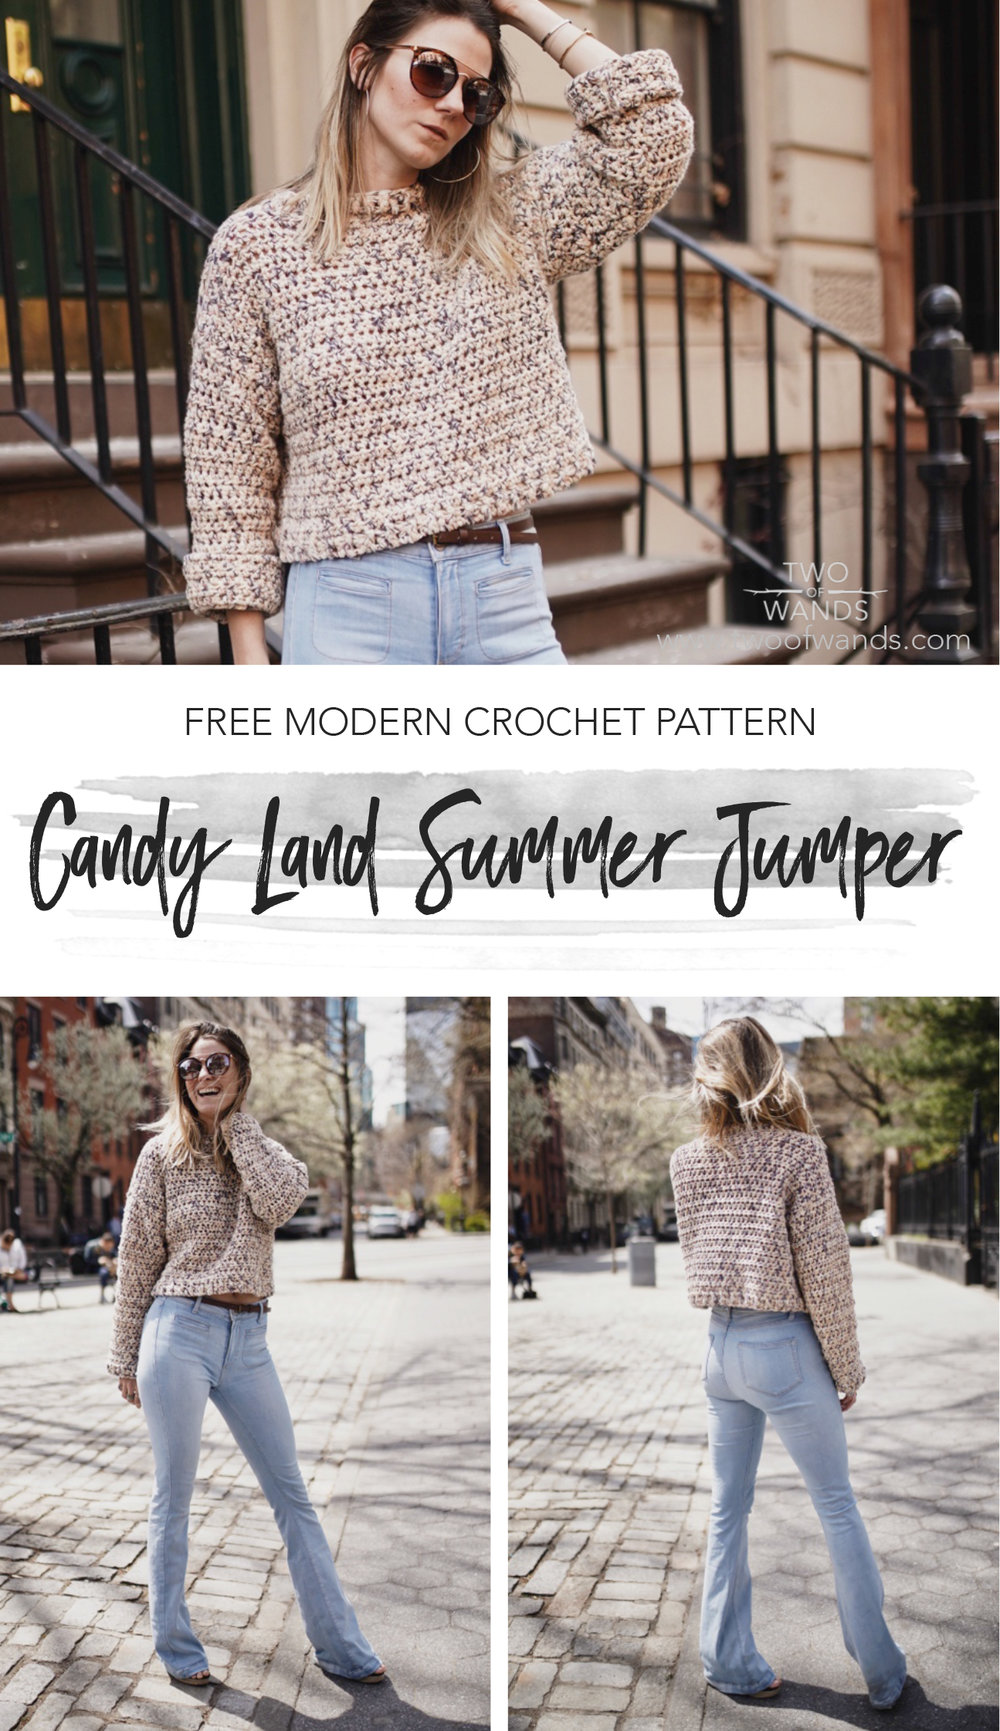 Candy Land Summer Jumper pattern by Two of Wands